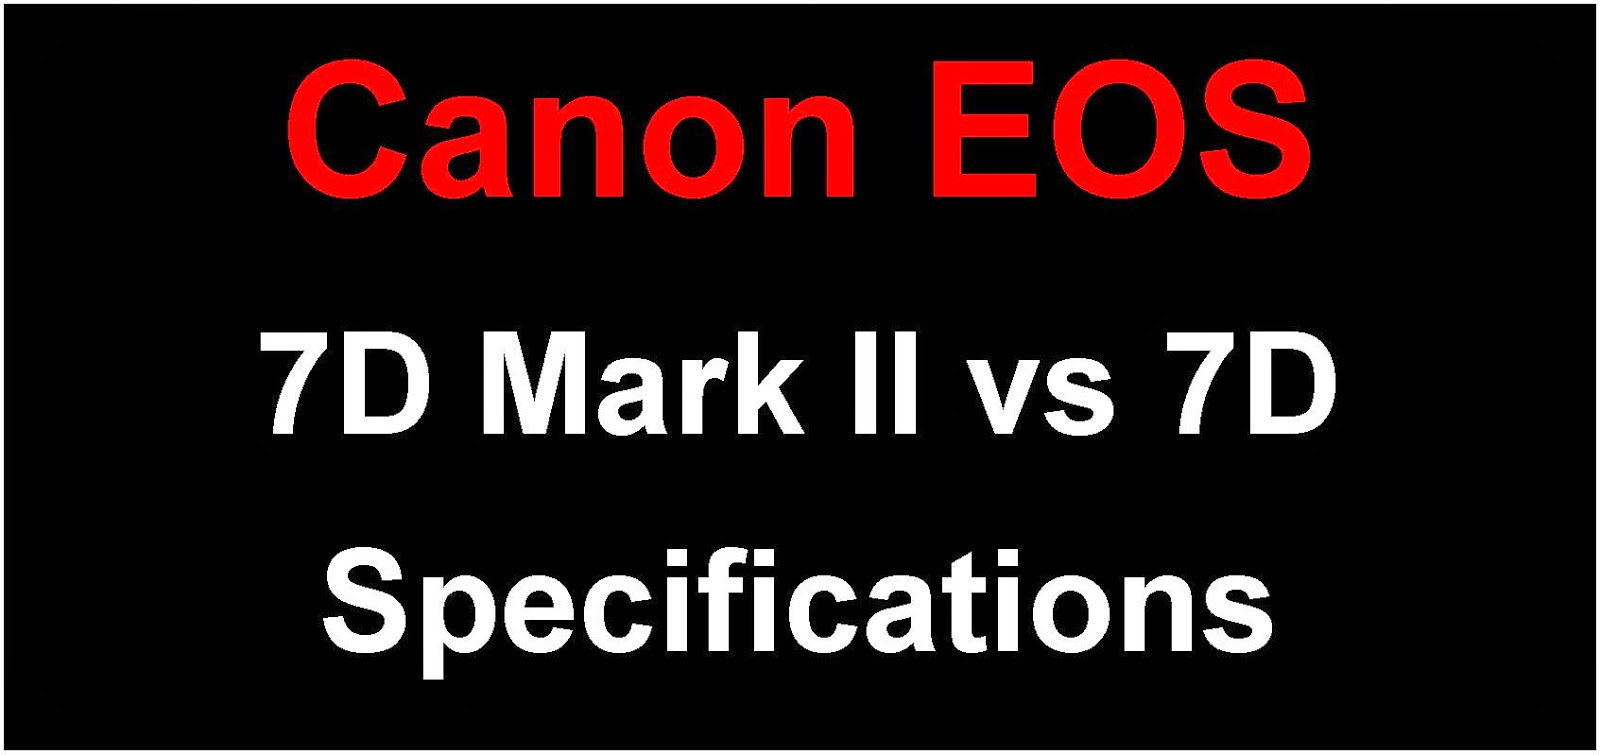 Canon EOS 7D Mark II vs EOS 7D Specification Comparison